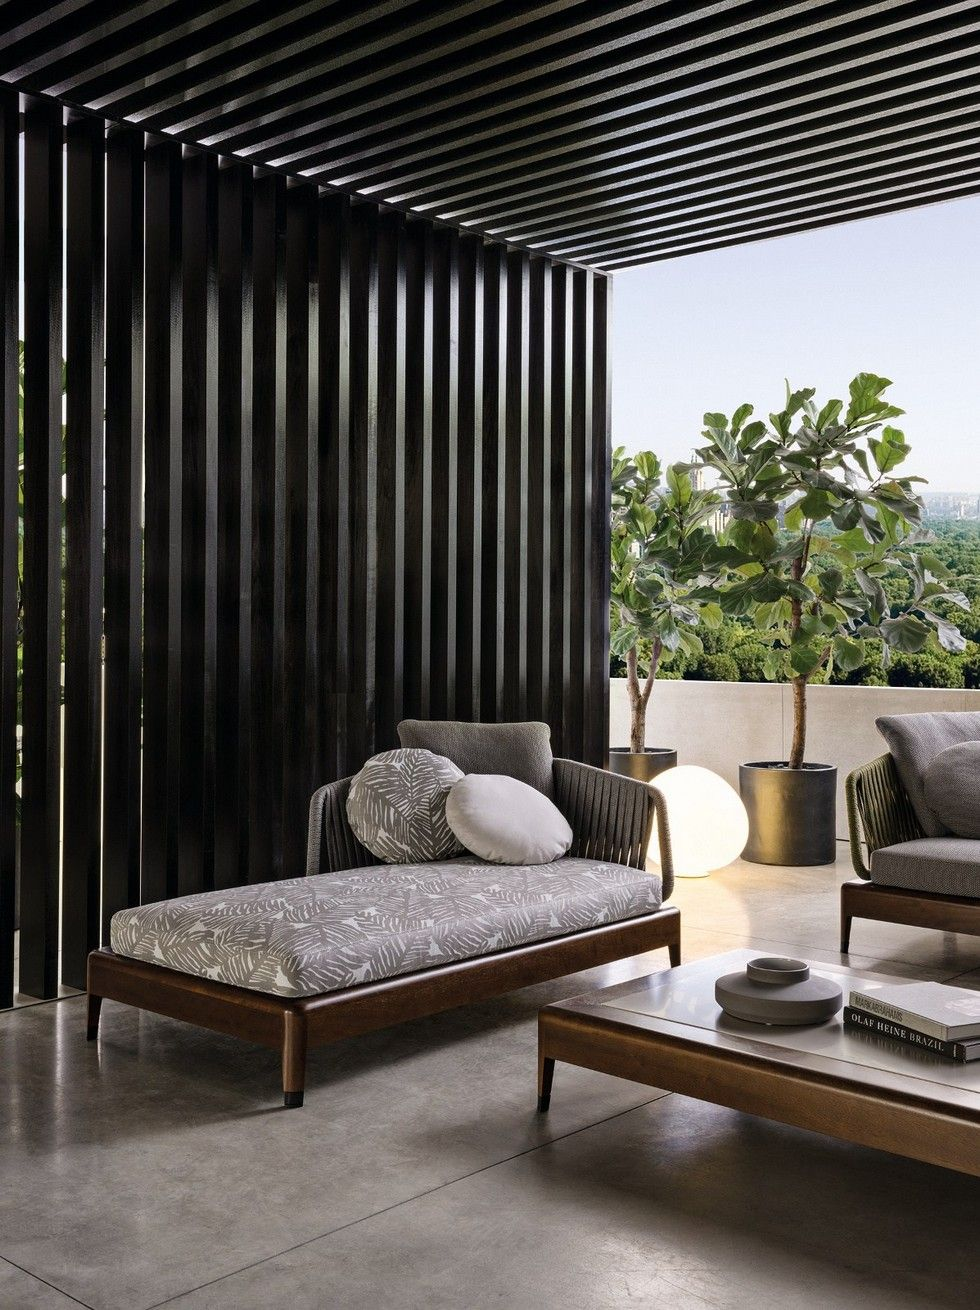 italy furniture brands. italian furniture brands minotti new project for outdoor italy